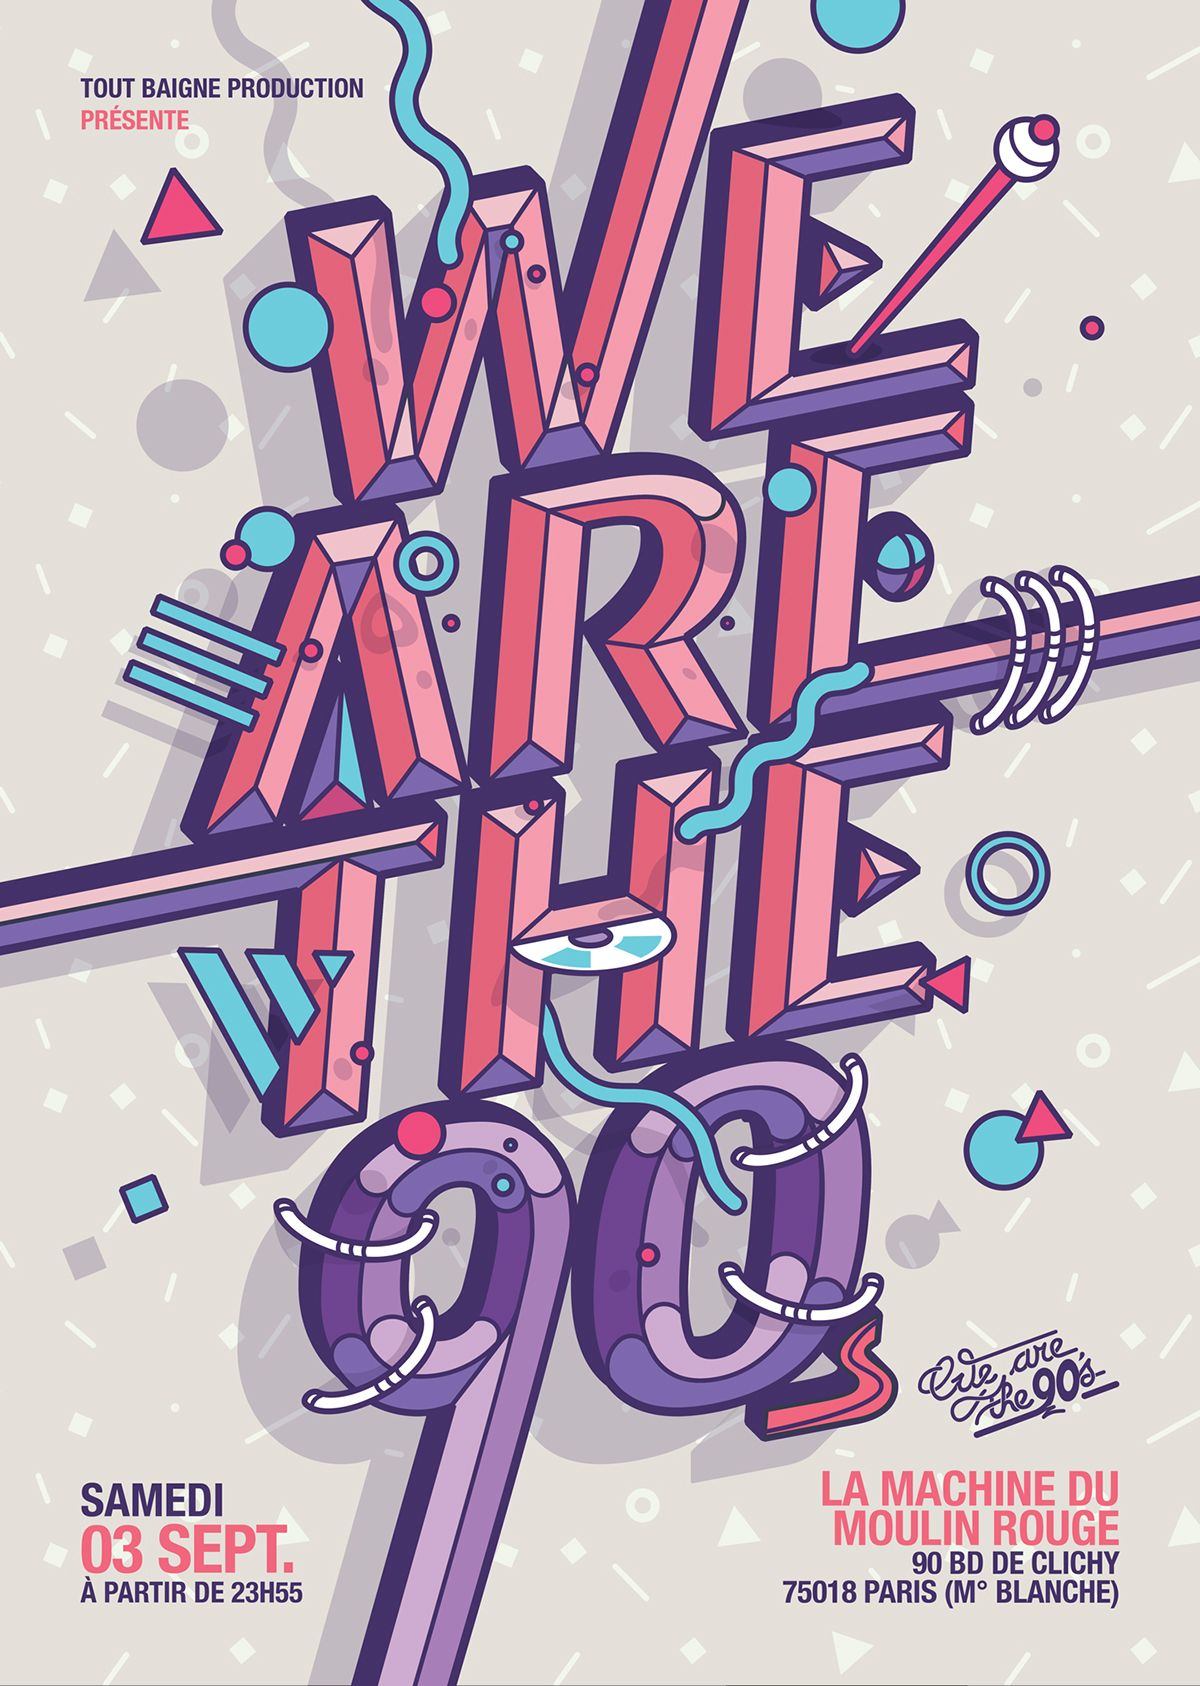 90s poster design - Find This Pin And More On Poster